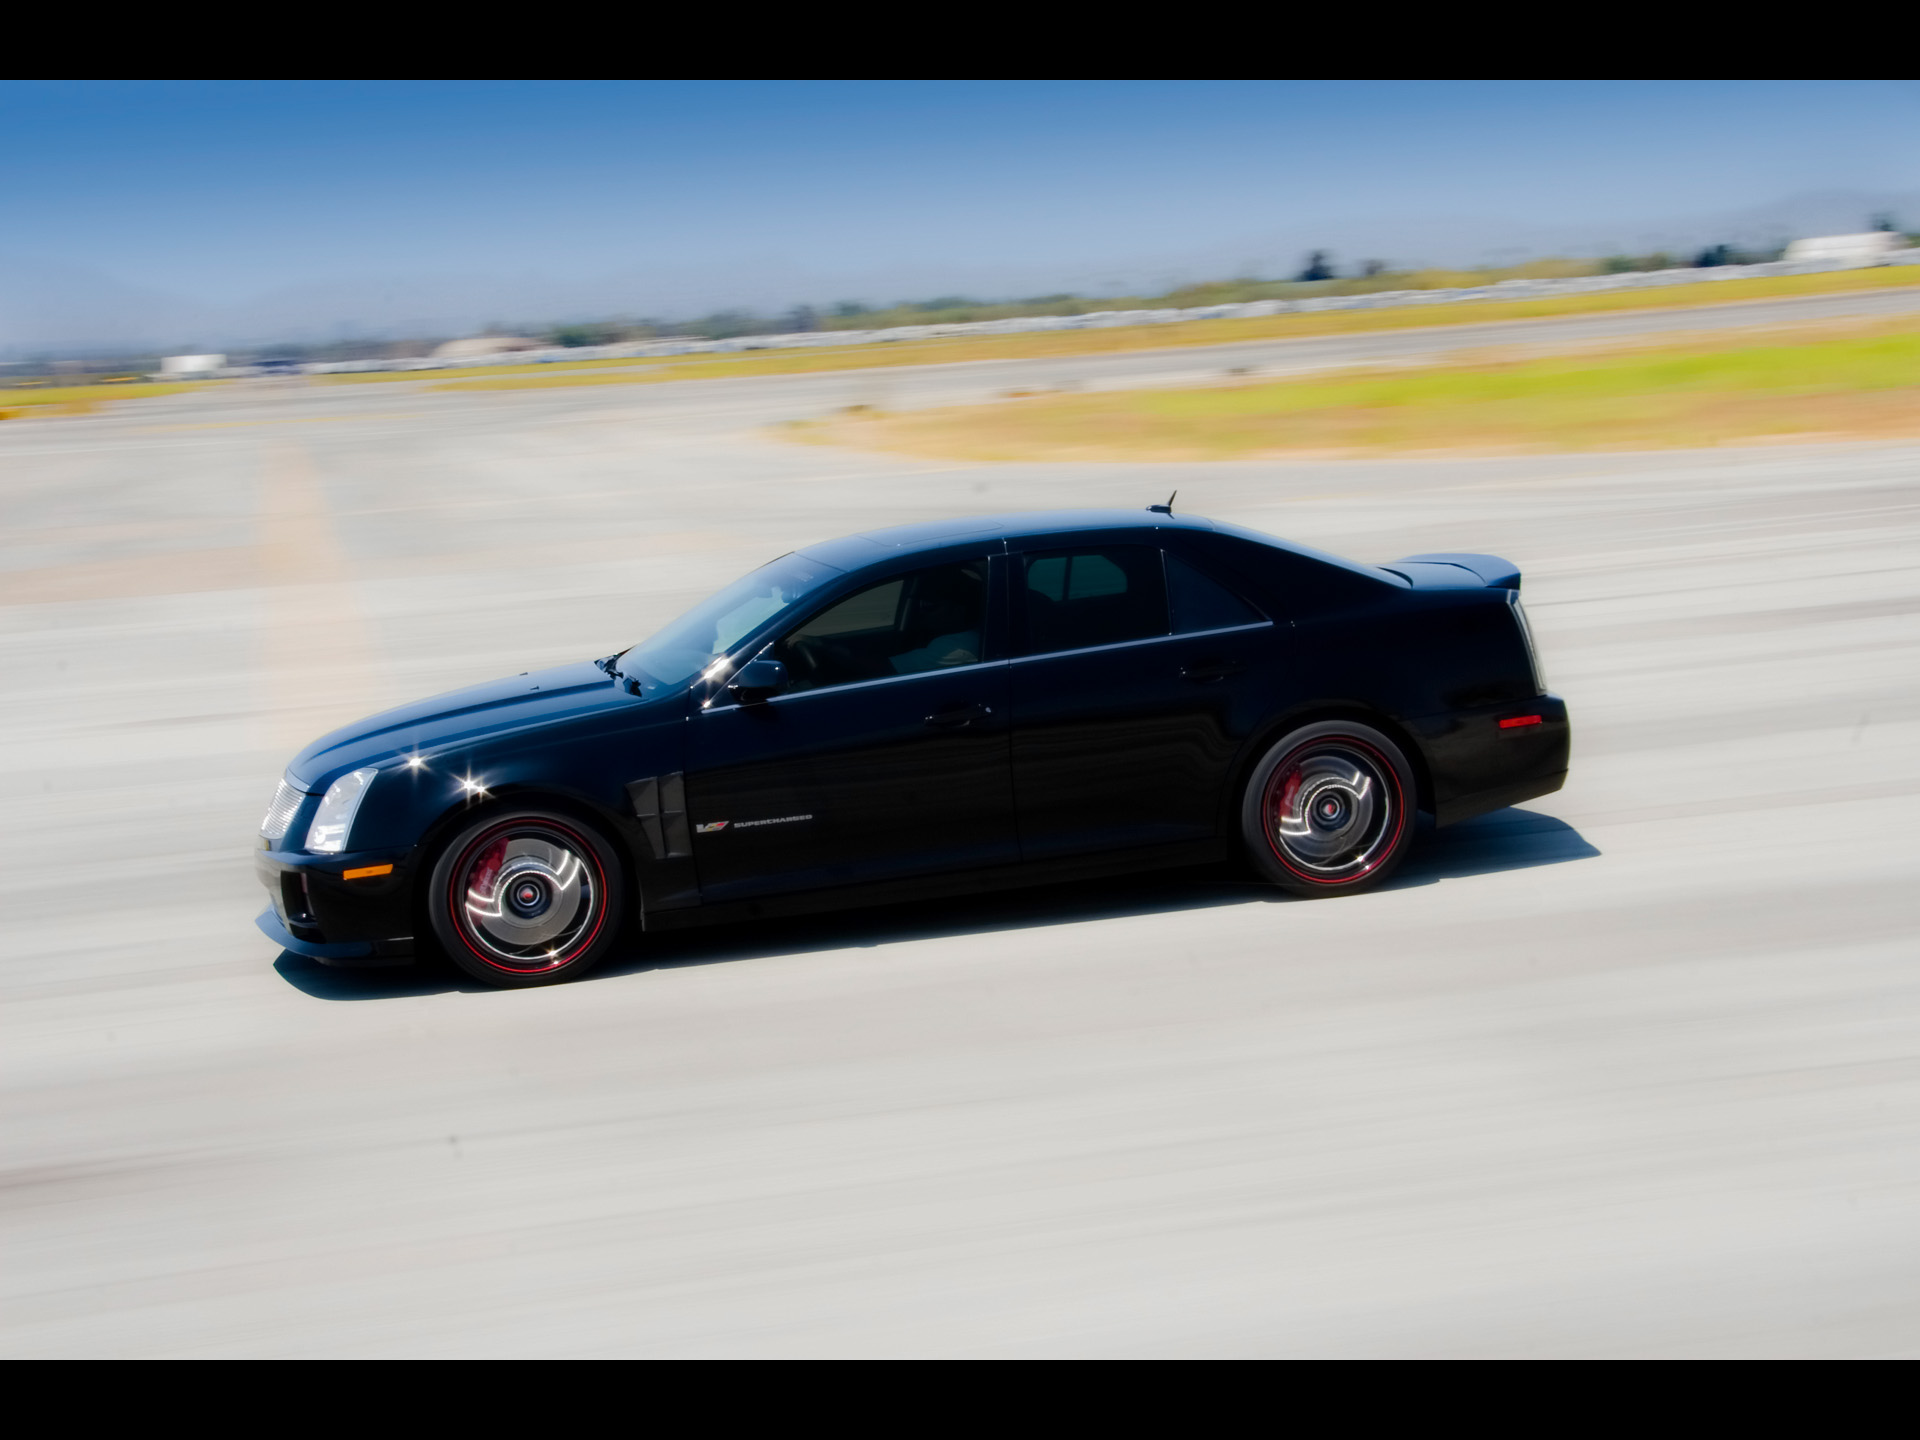 You can vote for this D3 Cadillac STS-V photo